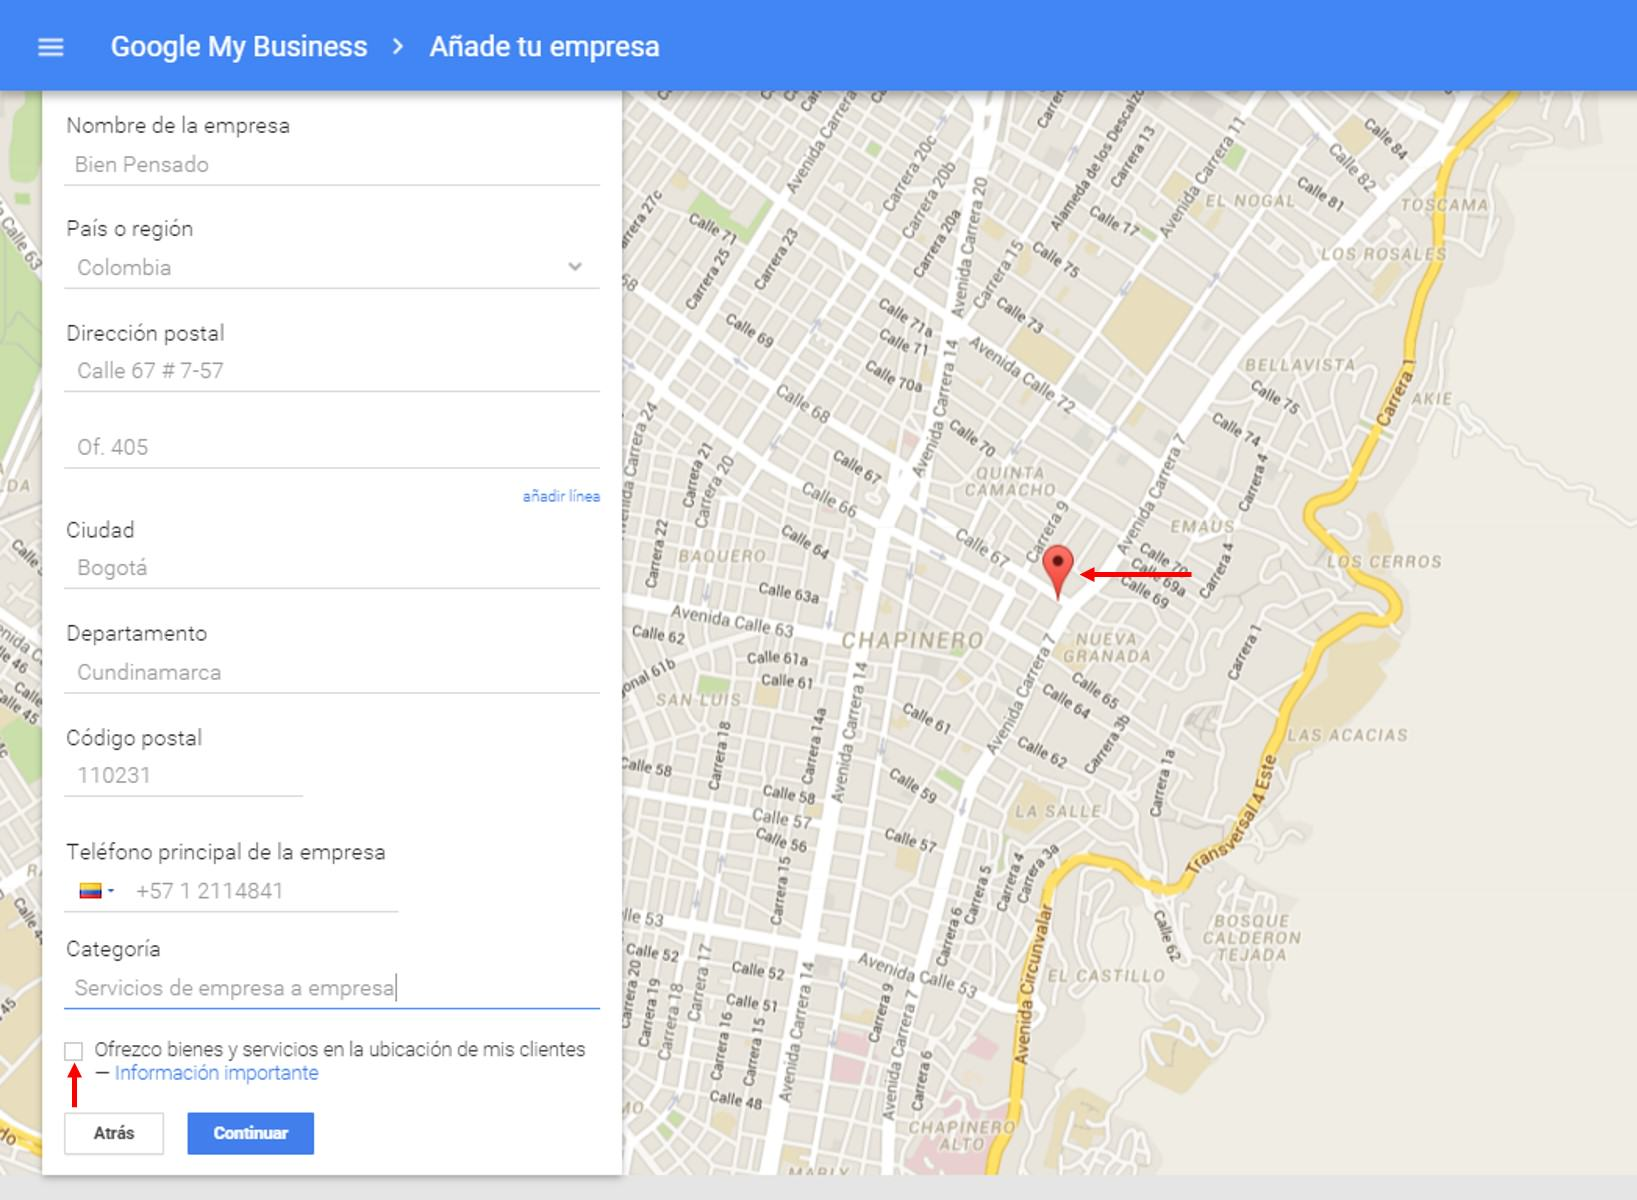 Registro de la empresa Google My Business